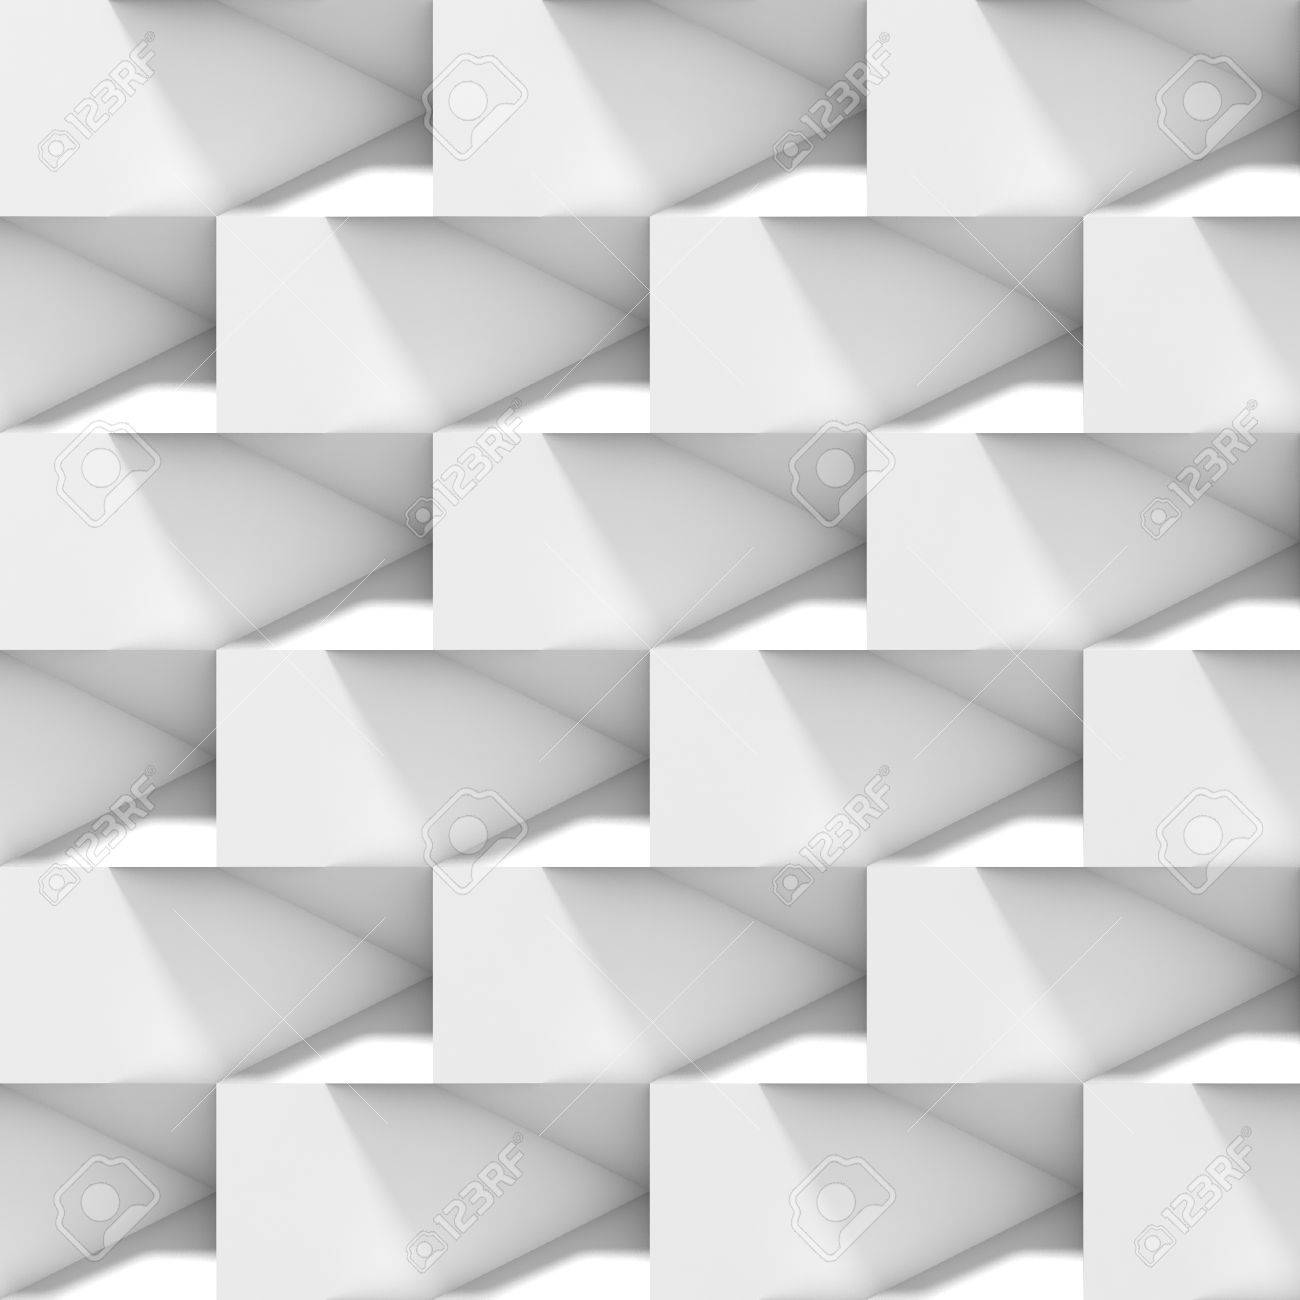 white grey seamless texture raster modern background can be